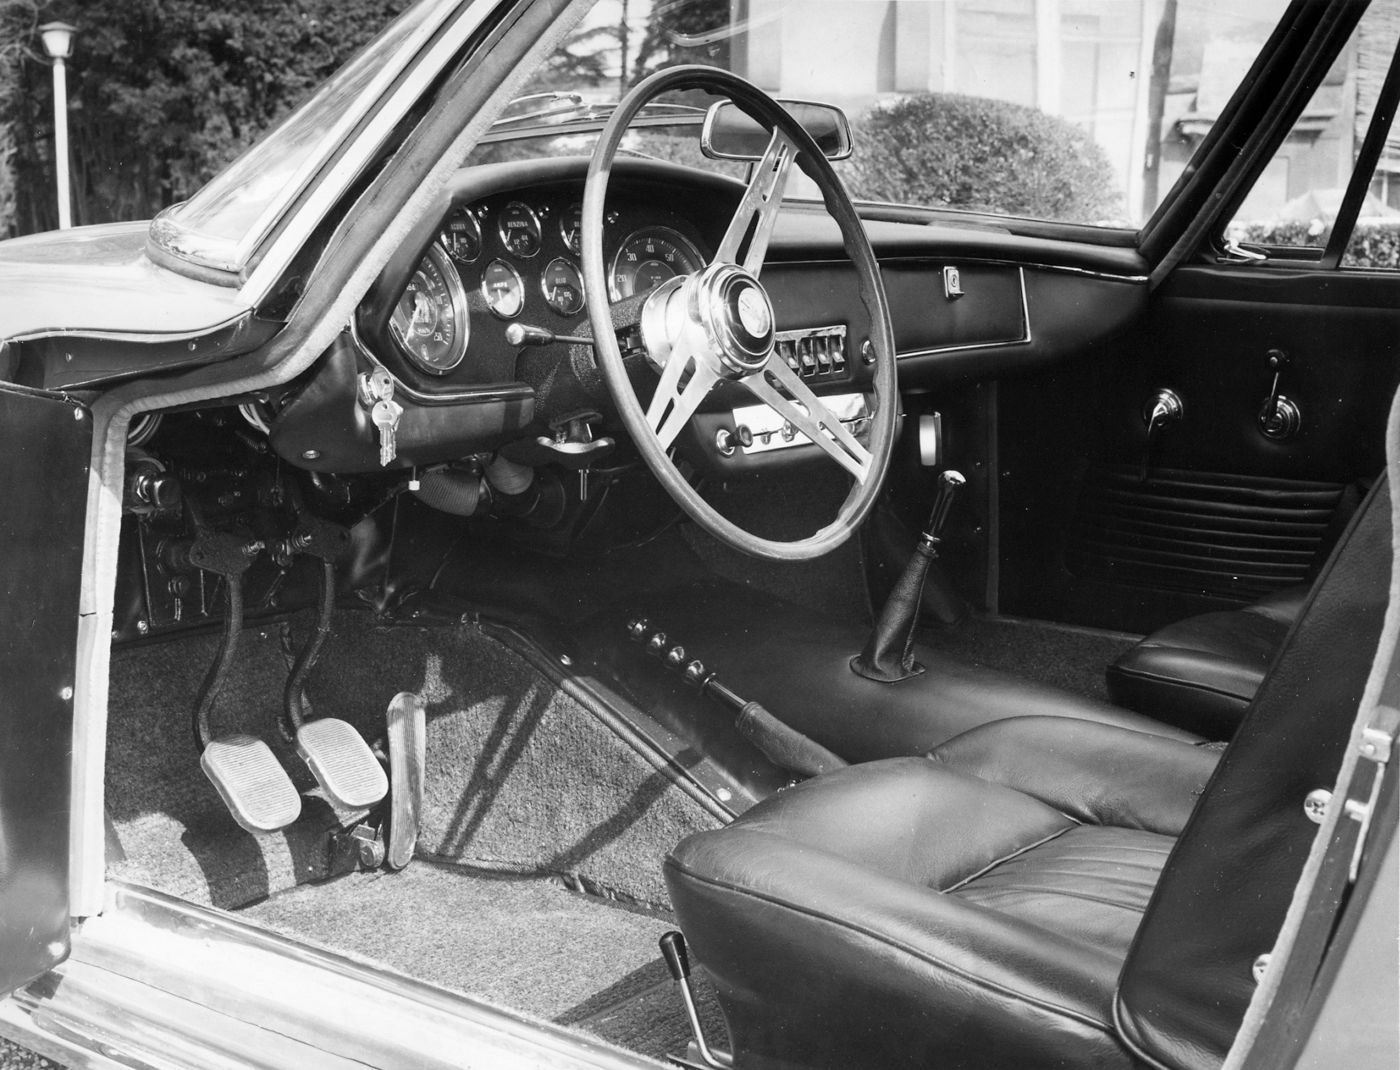 1964 Maserati Mistral Spyder - interior view of the classic sports car model